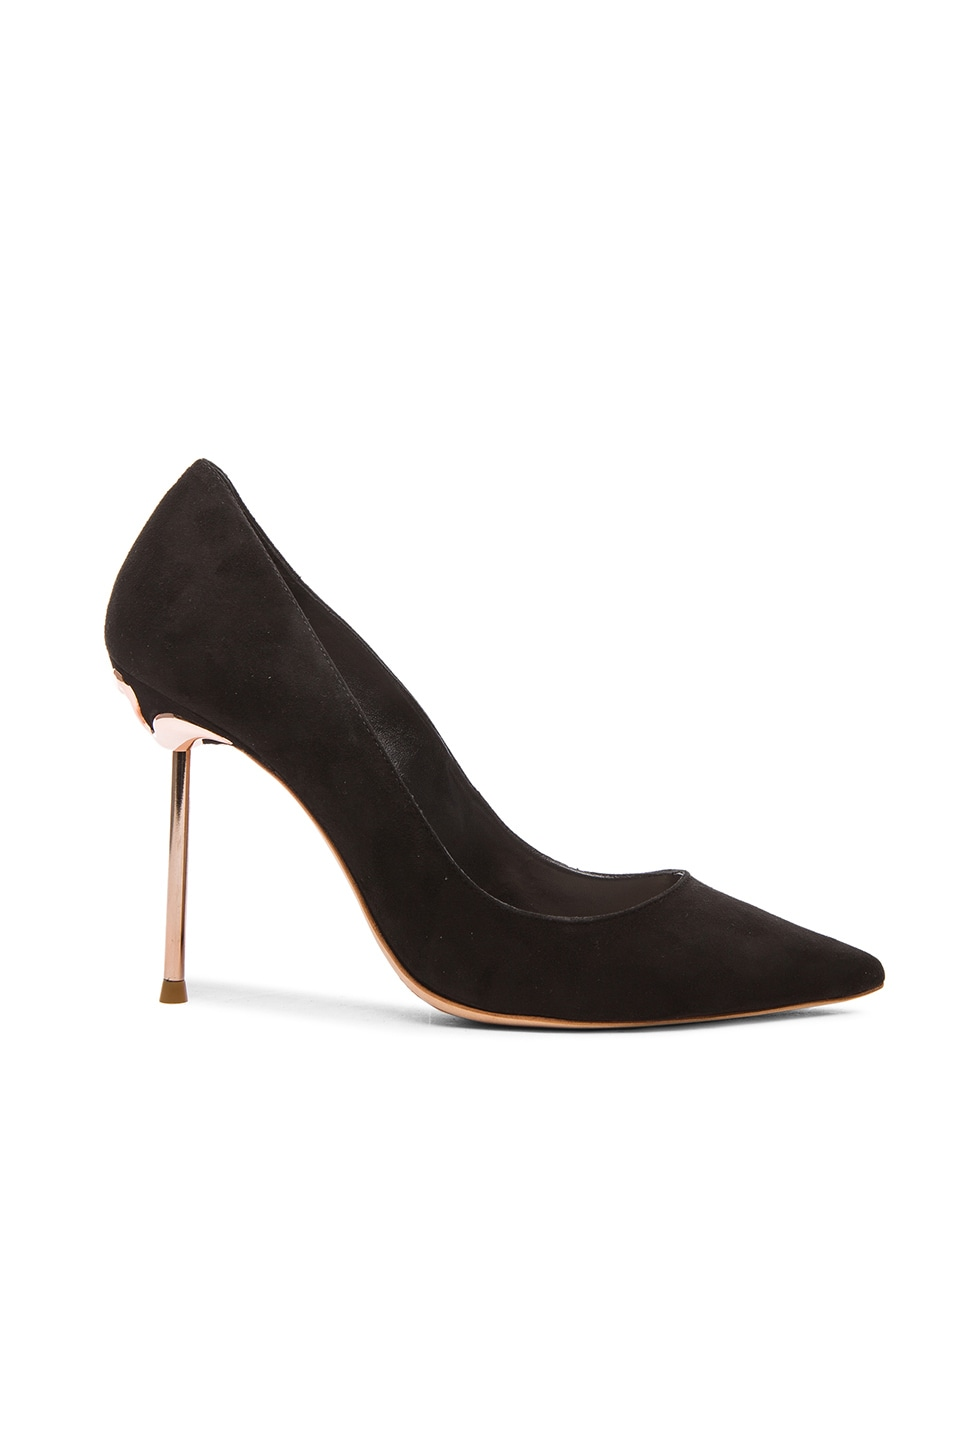 Image 1 of Sophia Webster Coco Flamingo Suede Heels in Black Suede